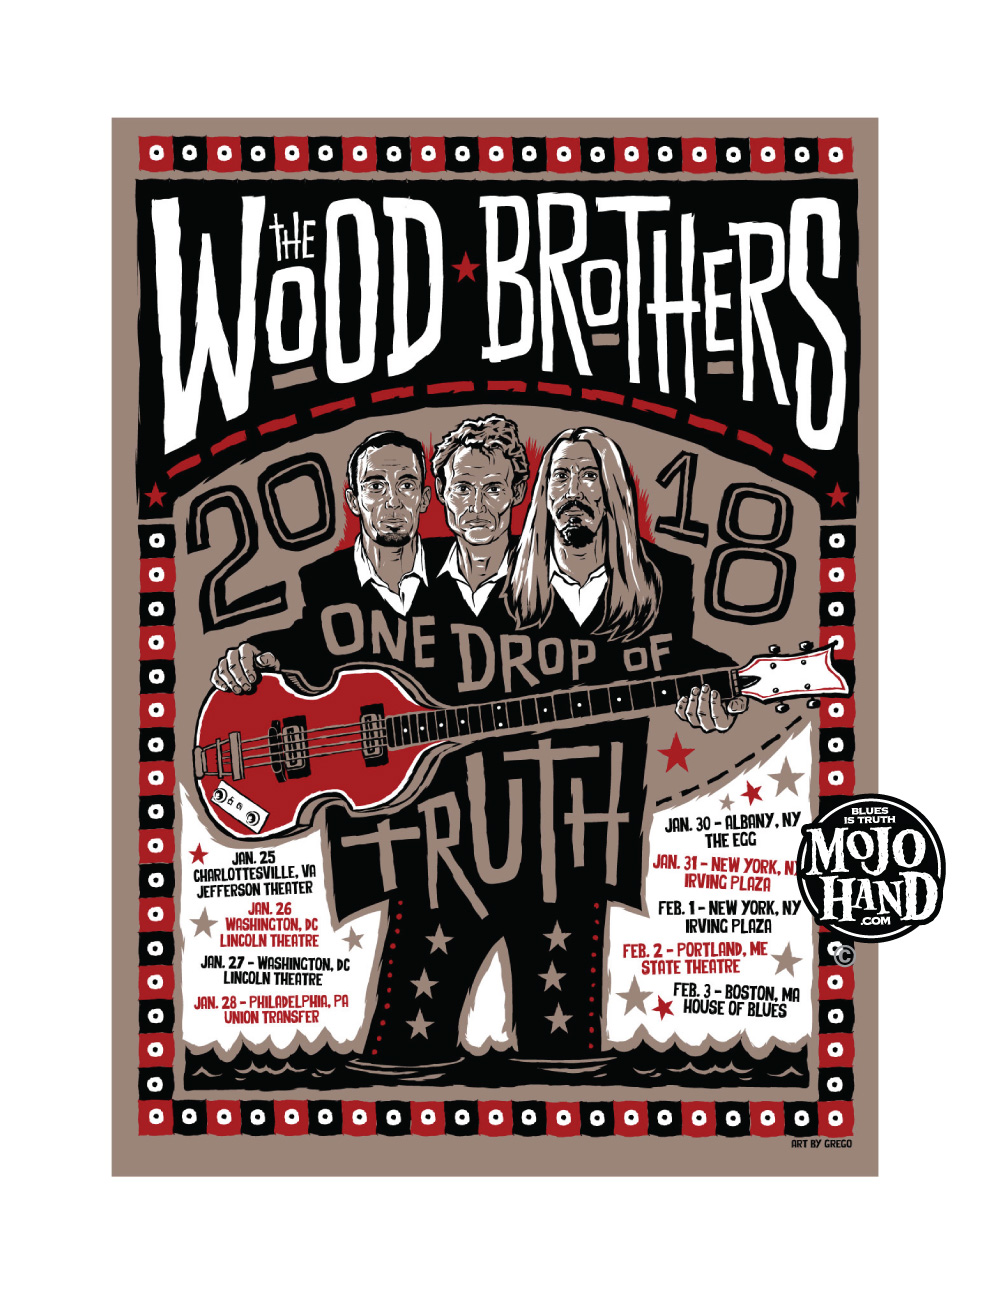 the wood brothers concert poster, folk art style by Grego Anderson - Mojohand.com